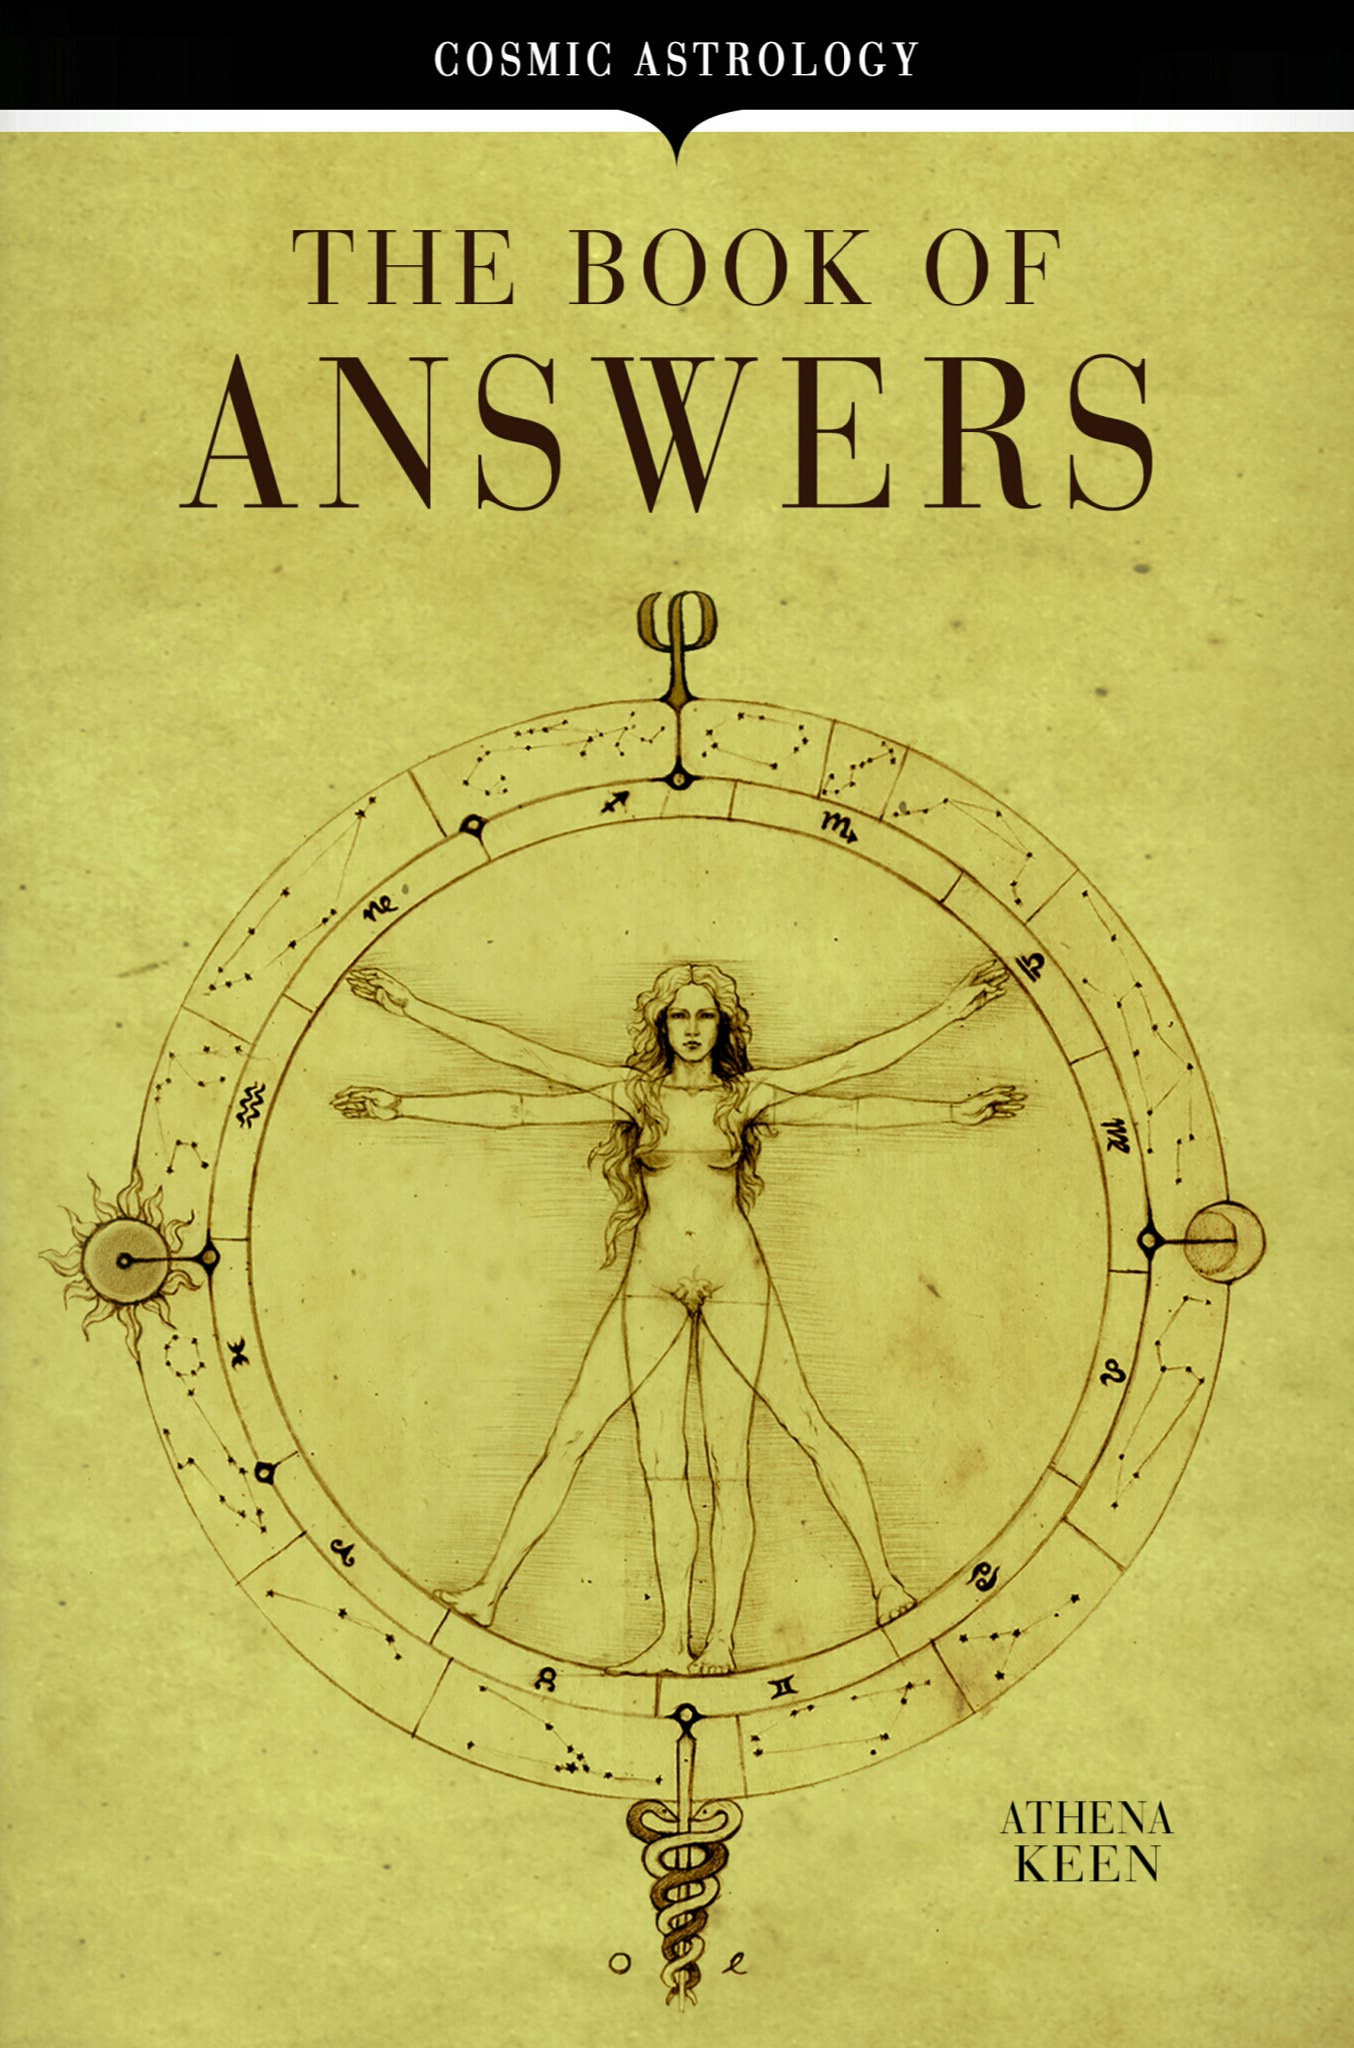 Cosmic Astrology The Book of Answers